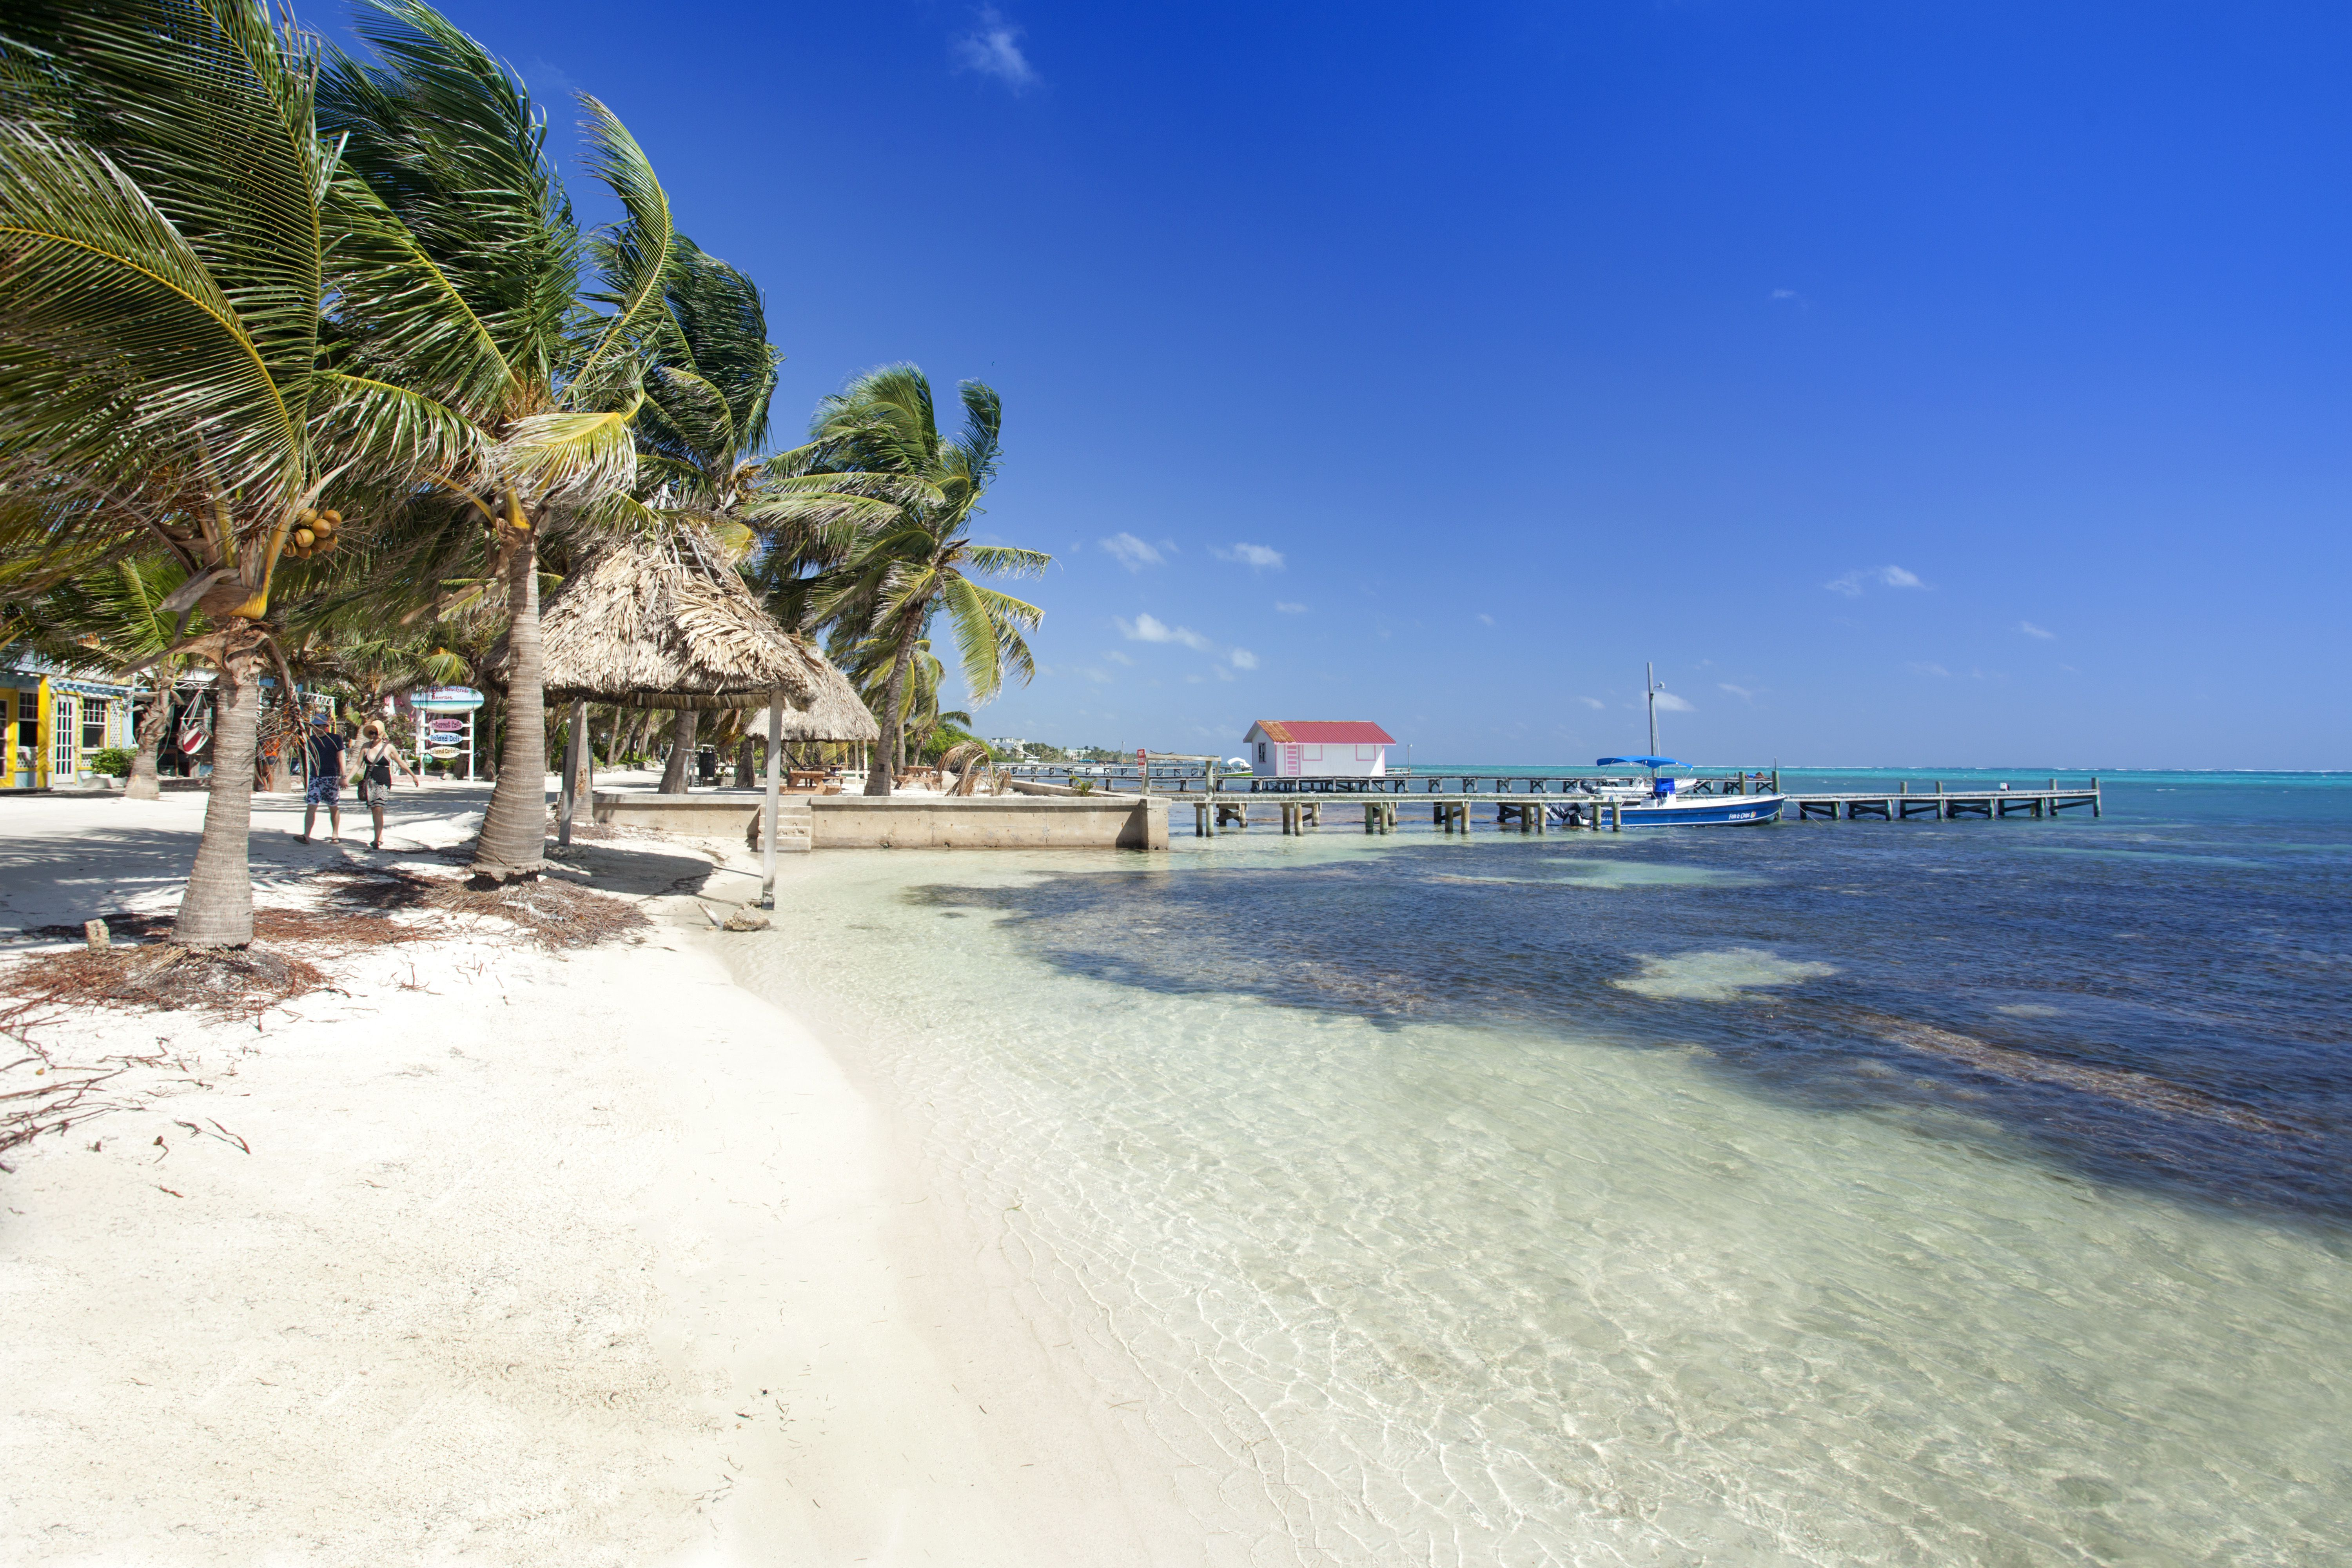 How To Stay Safe When Vacationing In Belize